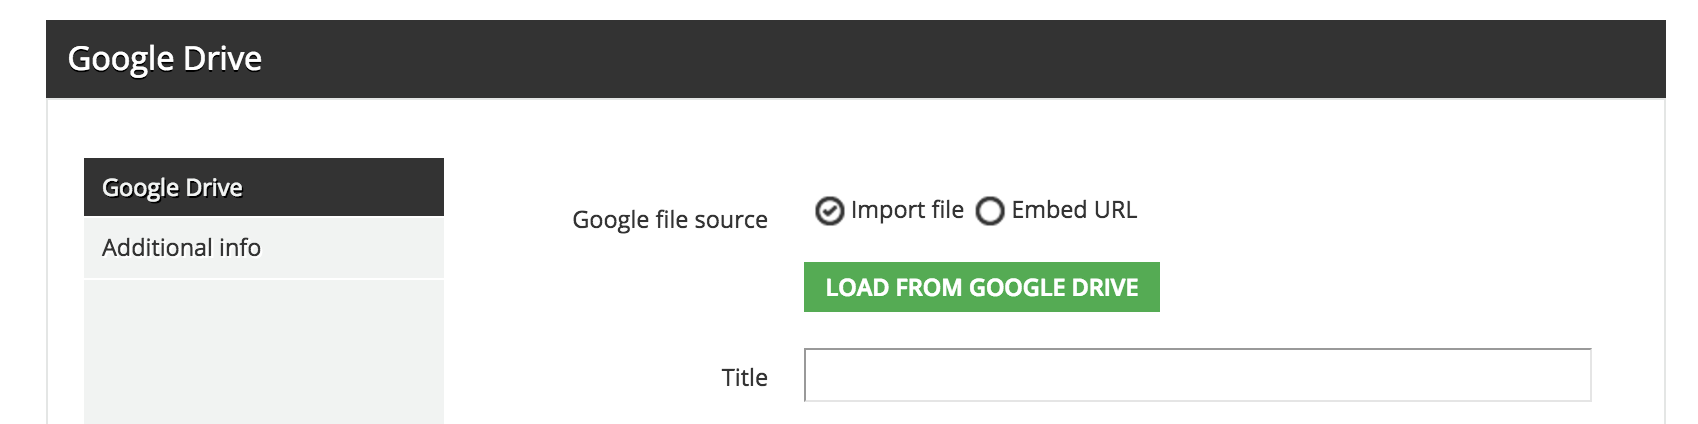 google drive load from drive